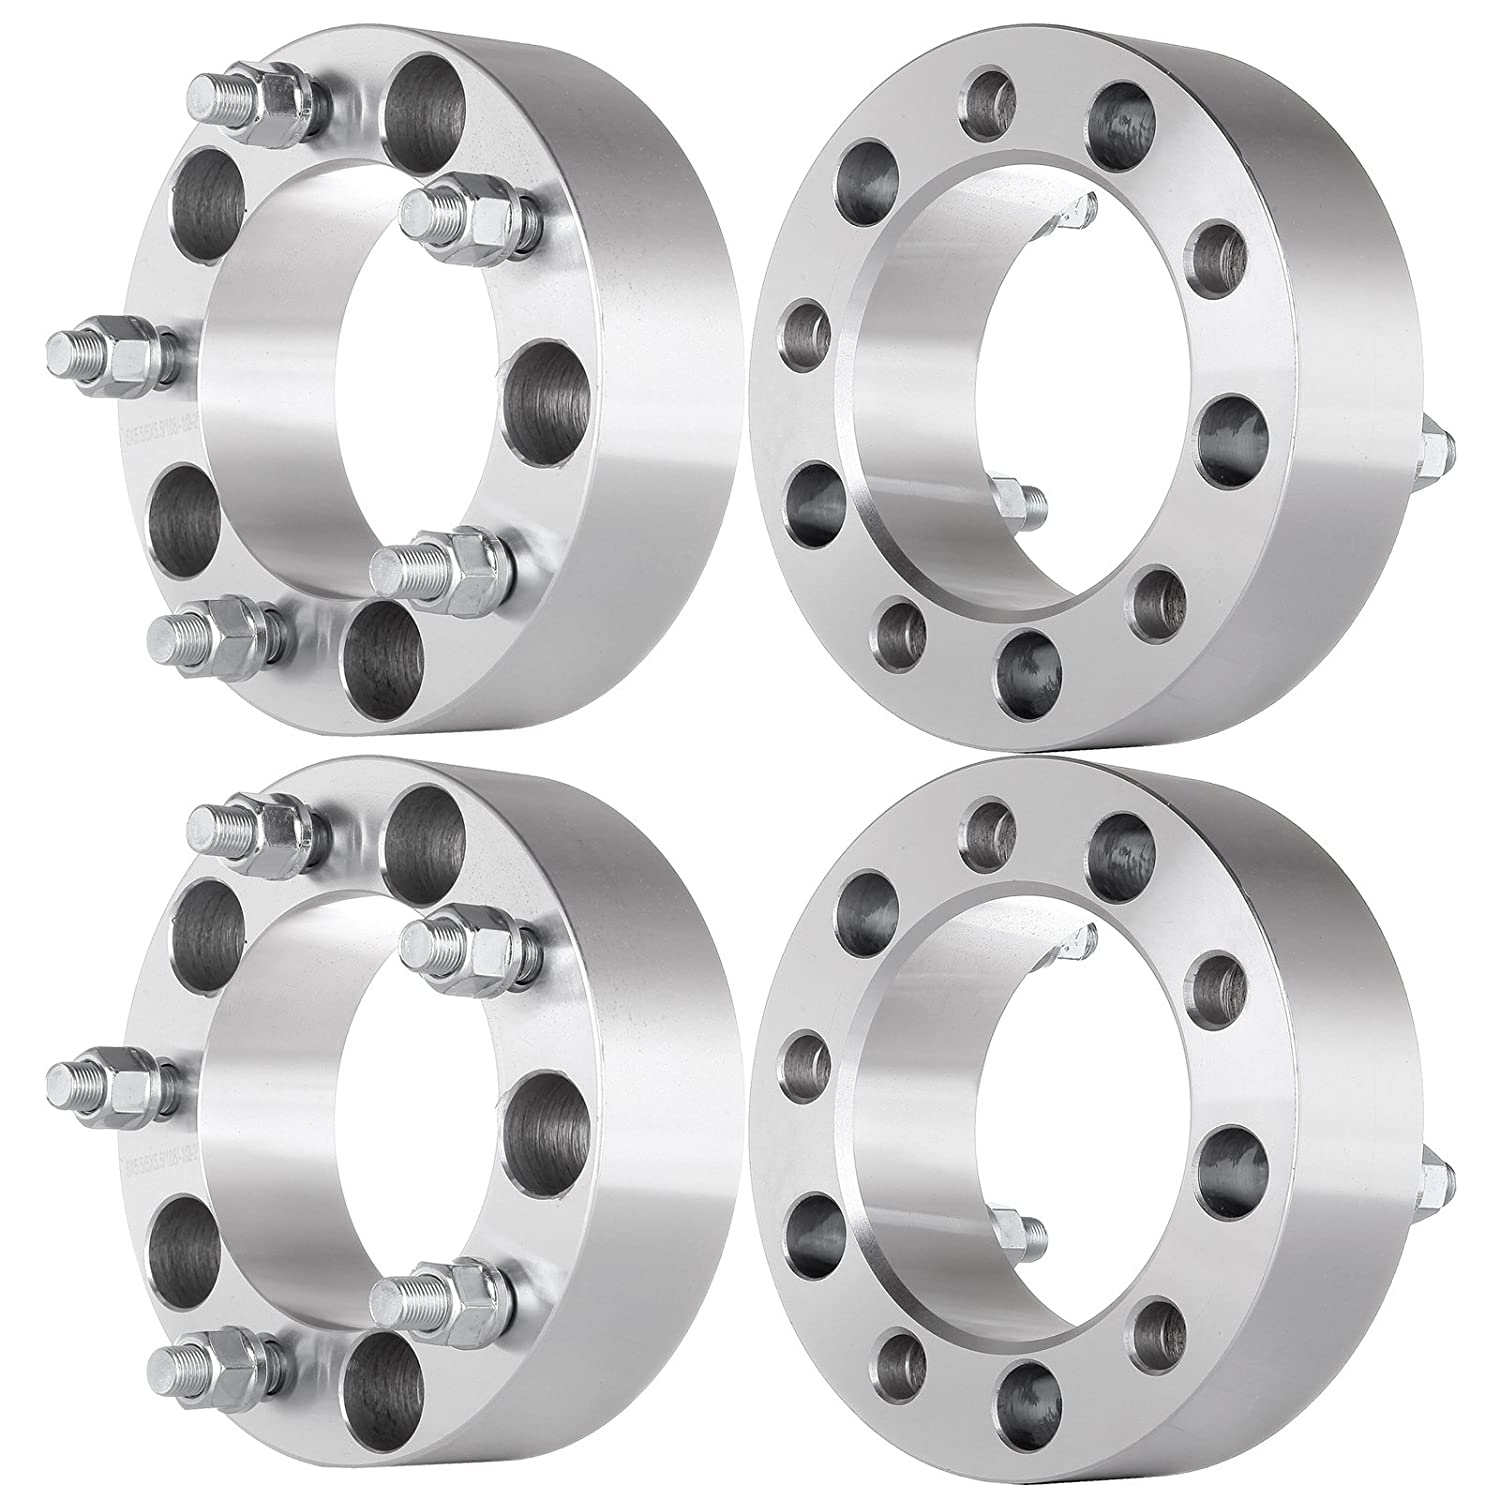 ECCPP Replacement Parts for 5X5 5 Wheel Spacer 50MM (4) 2